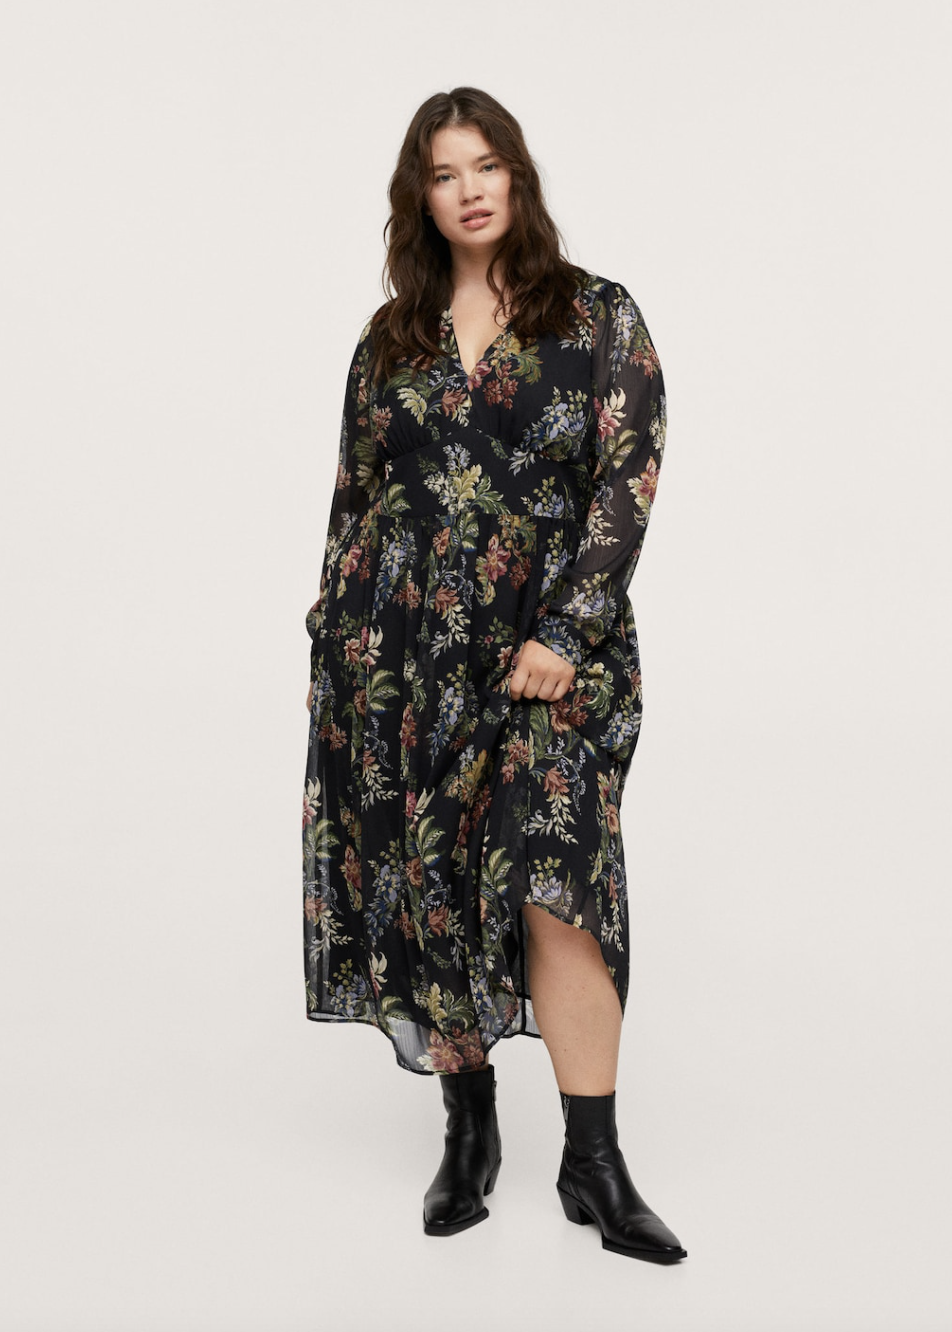 plus size model with brown hair posing in black booties and floral maxi dress